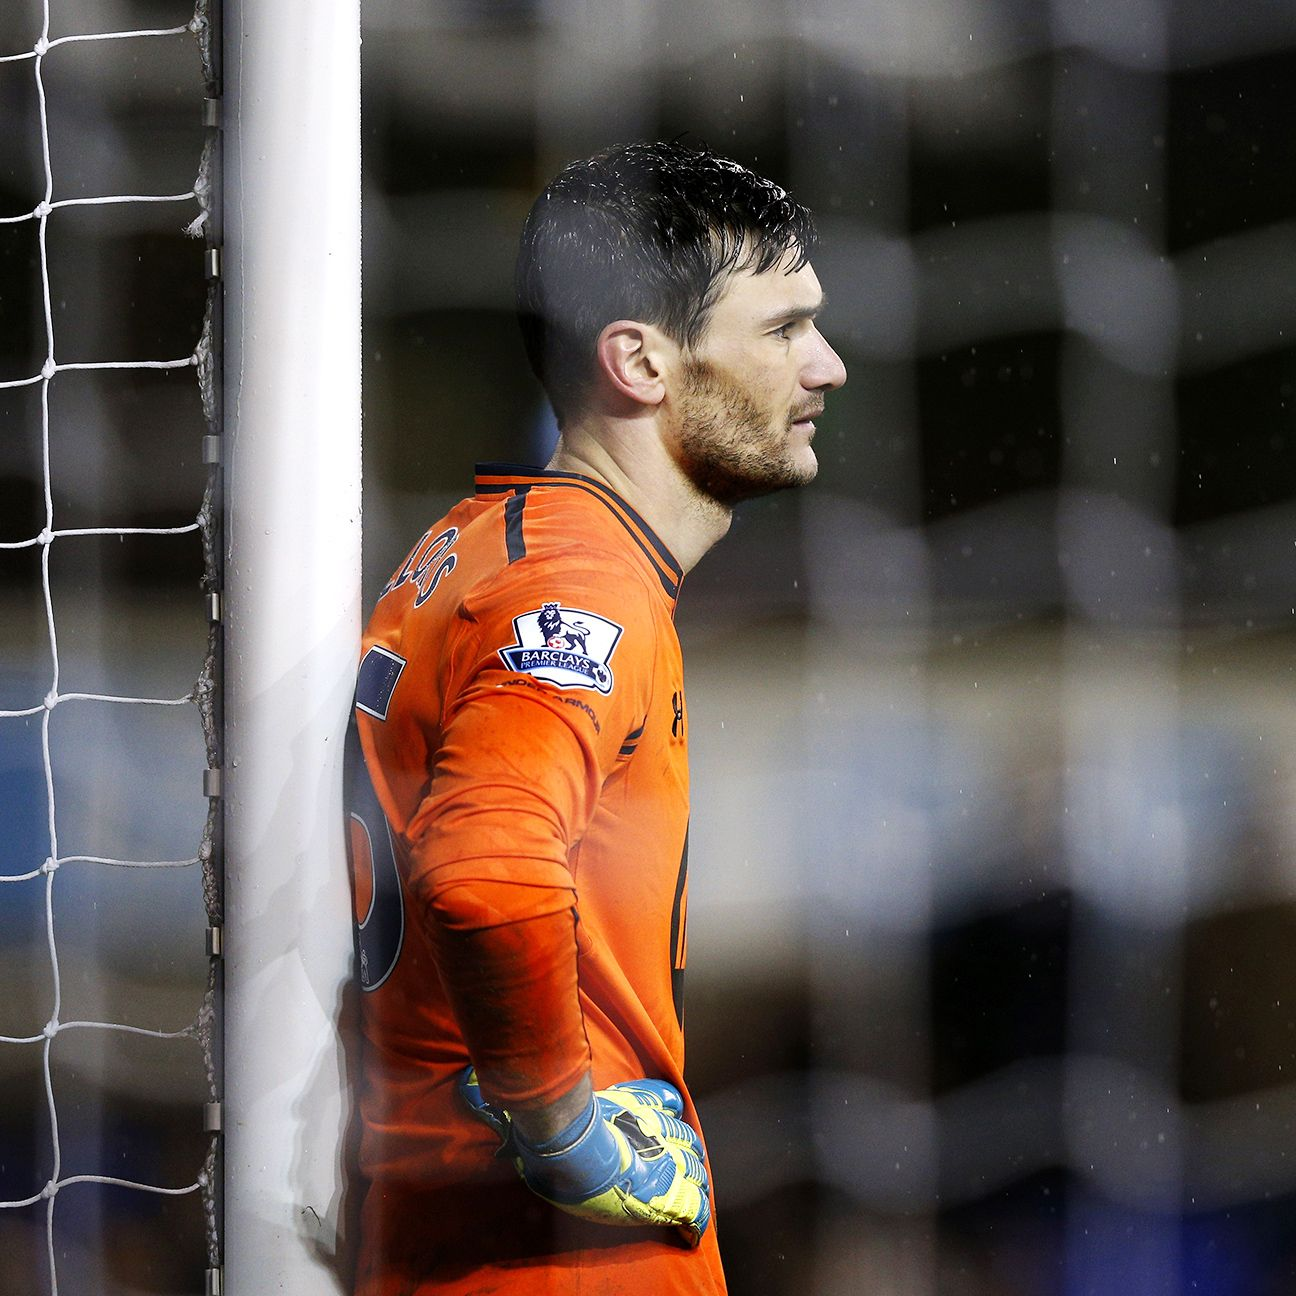 Hugo Lloris collected eight clean sheets in 35 Premier League appearances with Spurs during the 2014-15 season.